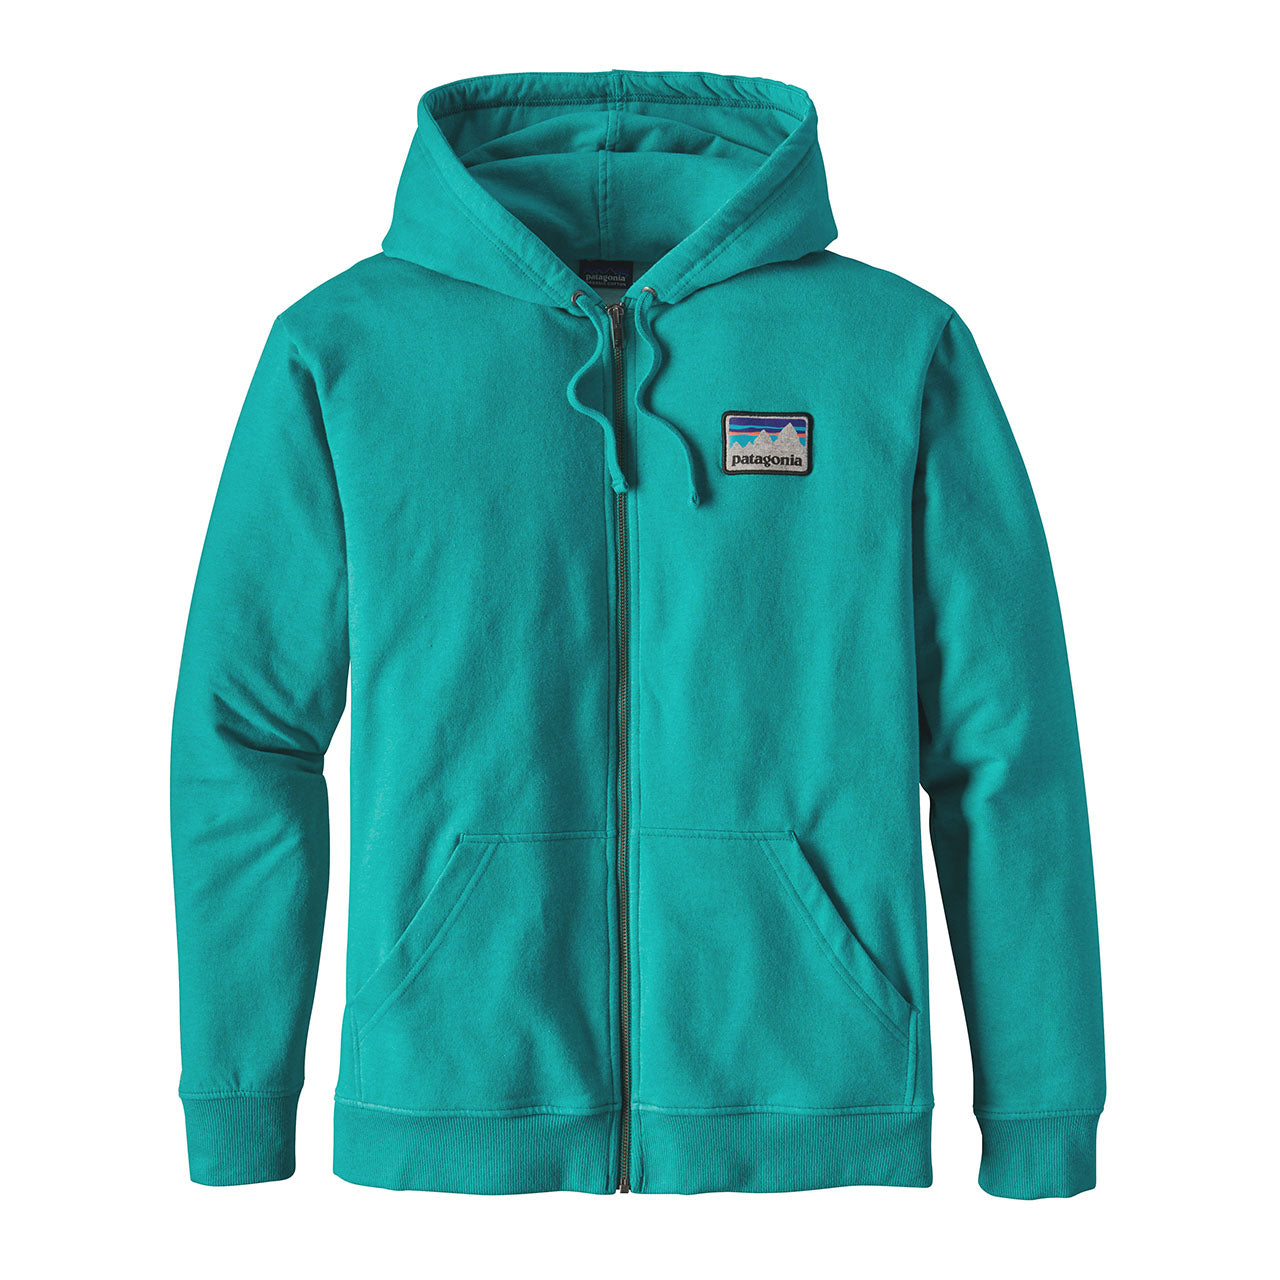 Mens Shop Sticker Patch MW Full-Zip Hoody